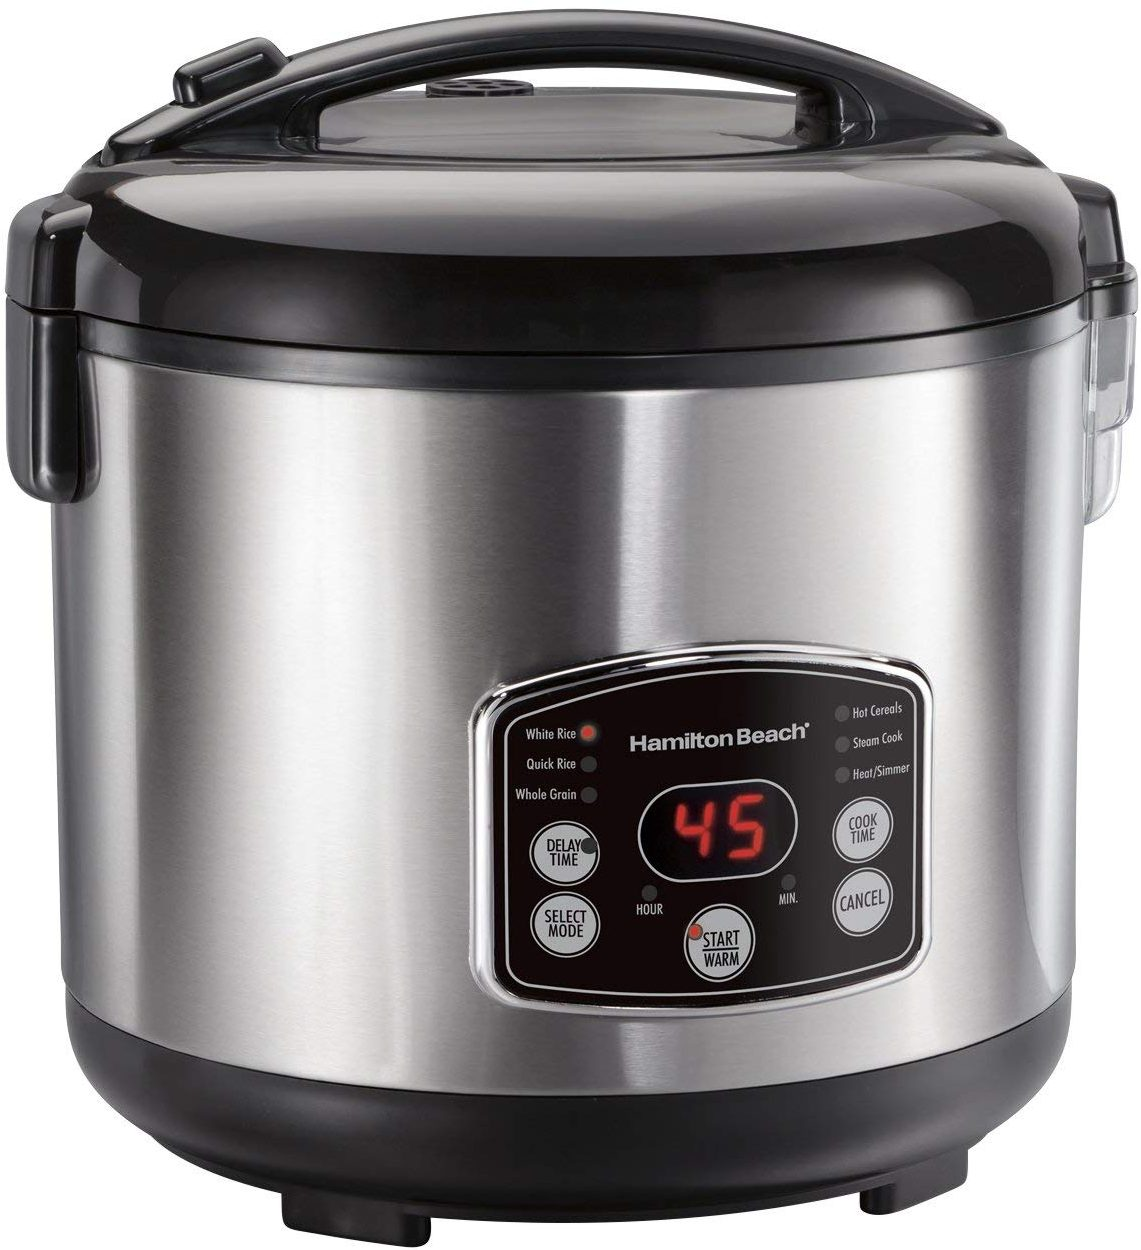 Hamilton Beach Steam and Rice Cooker